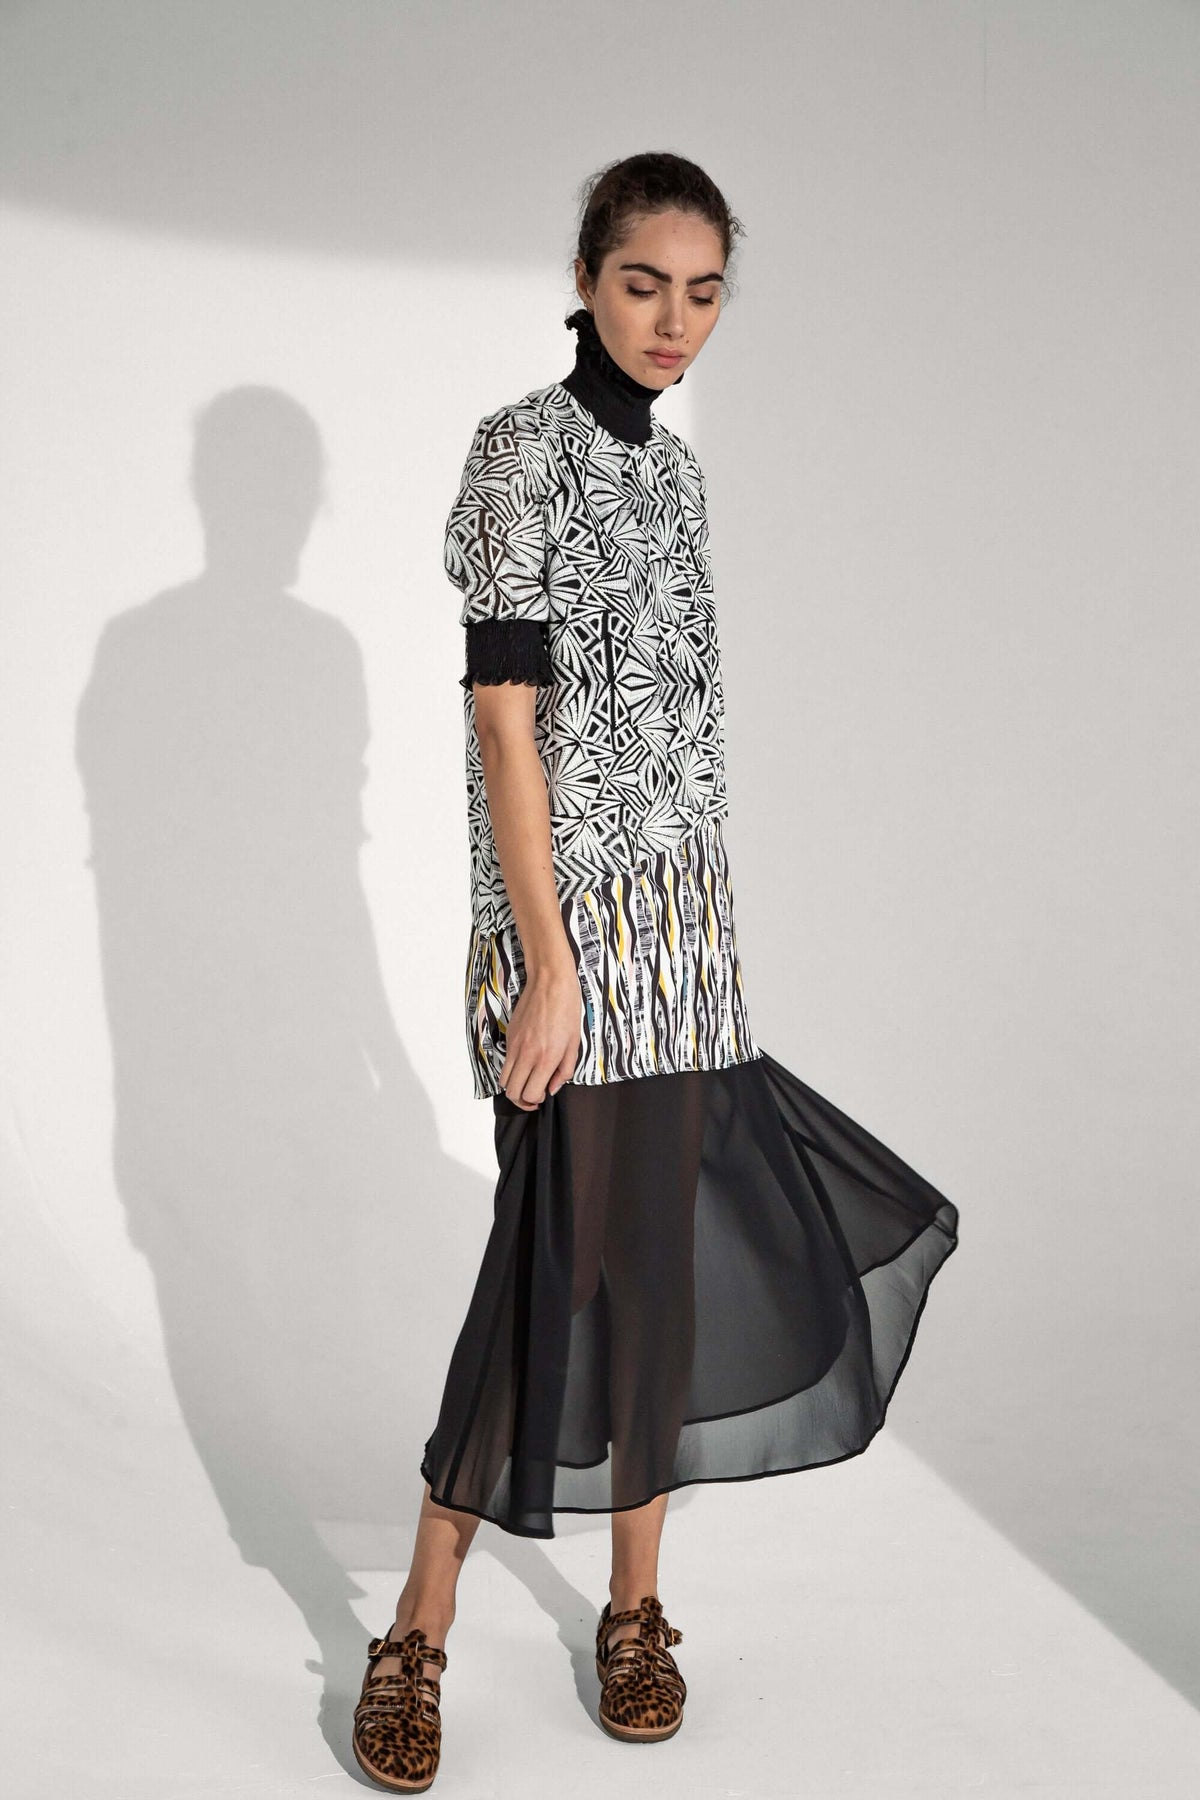 Dries dress in roots print